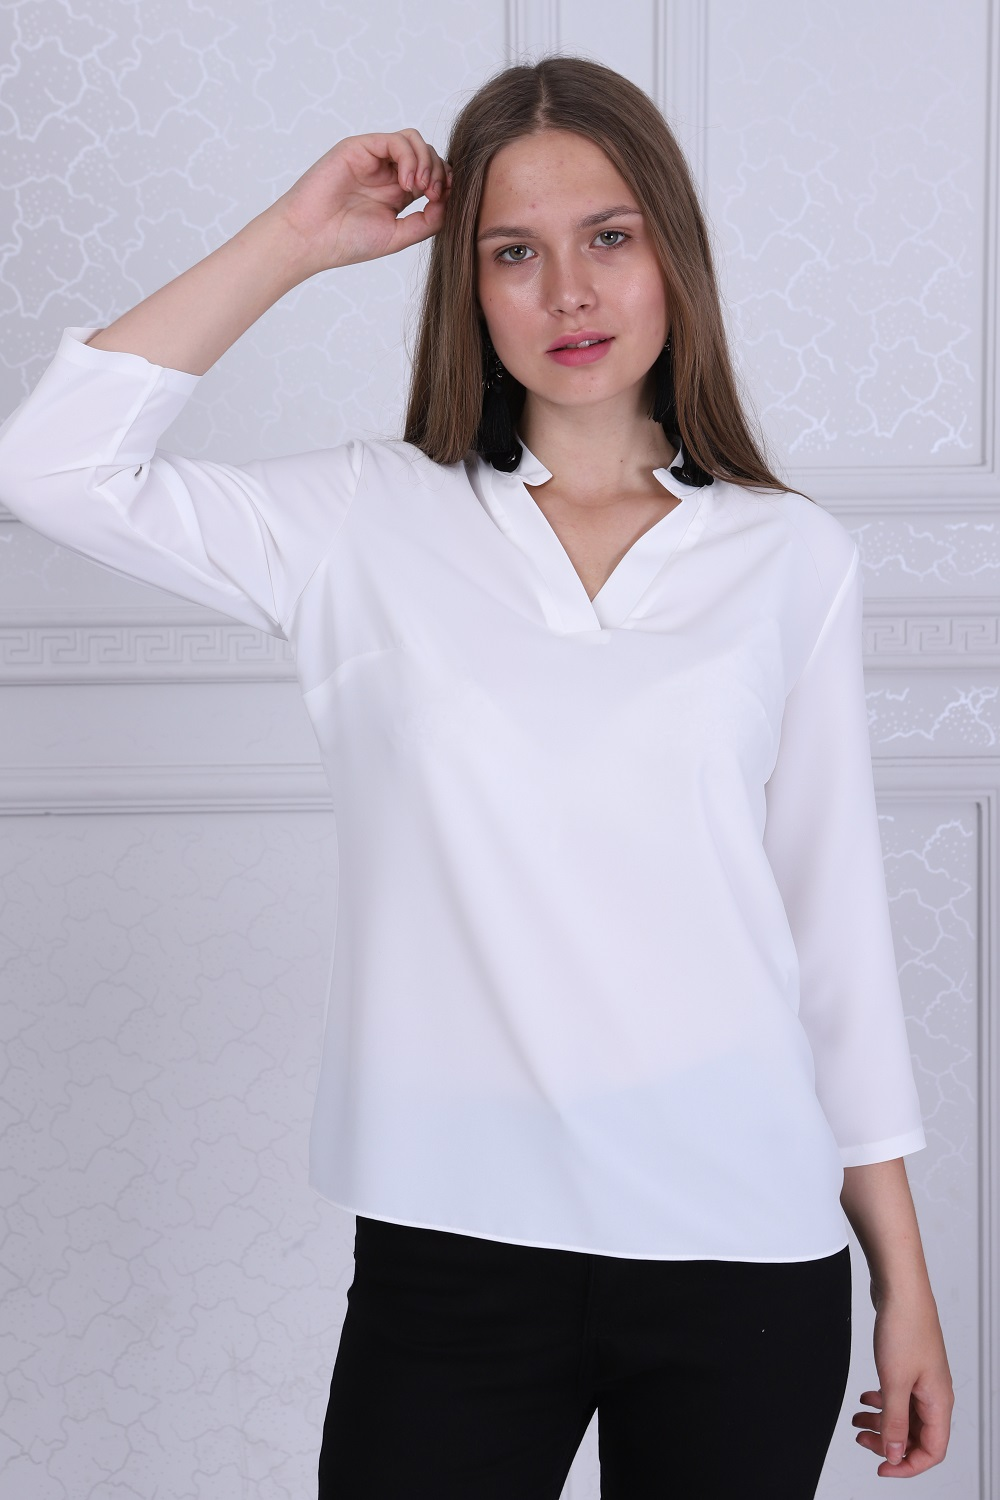 Collar Detailed White Color Blouse